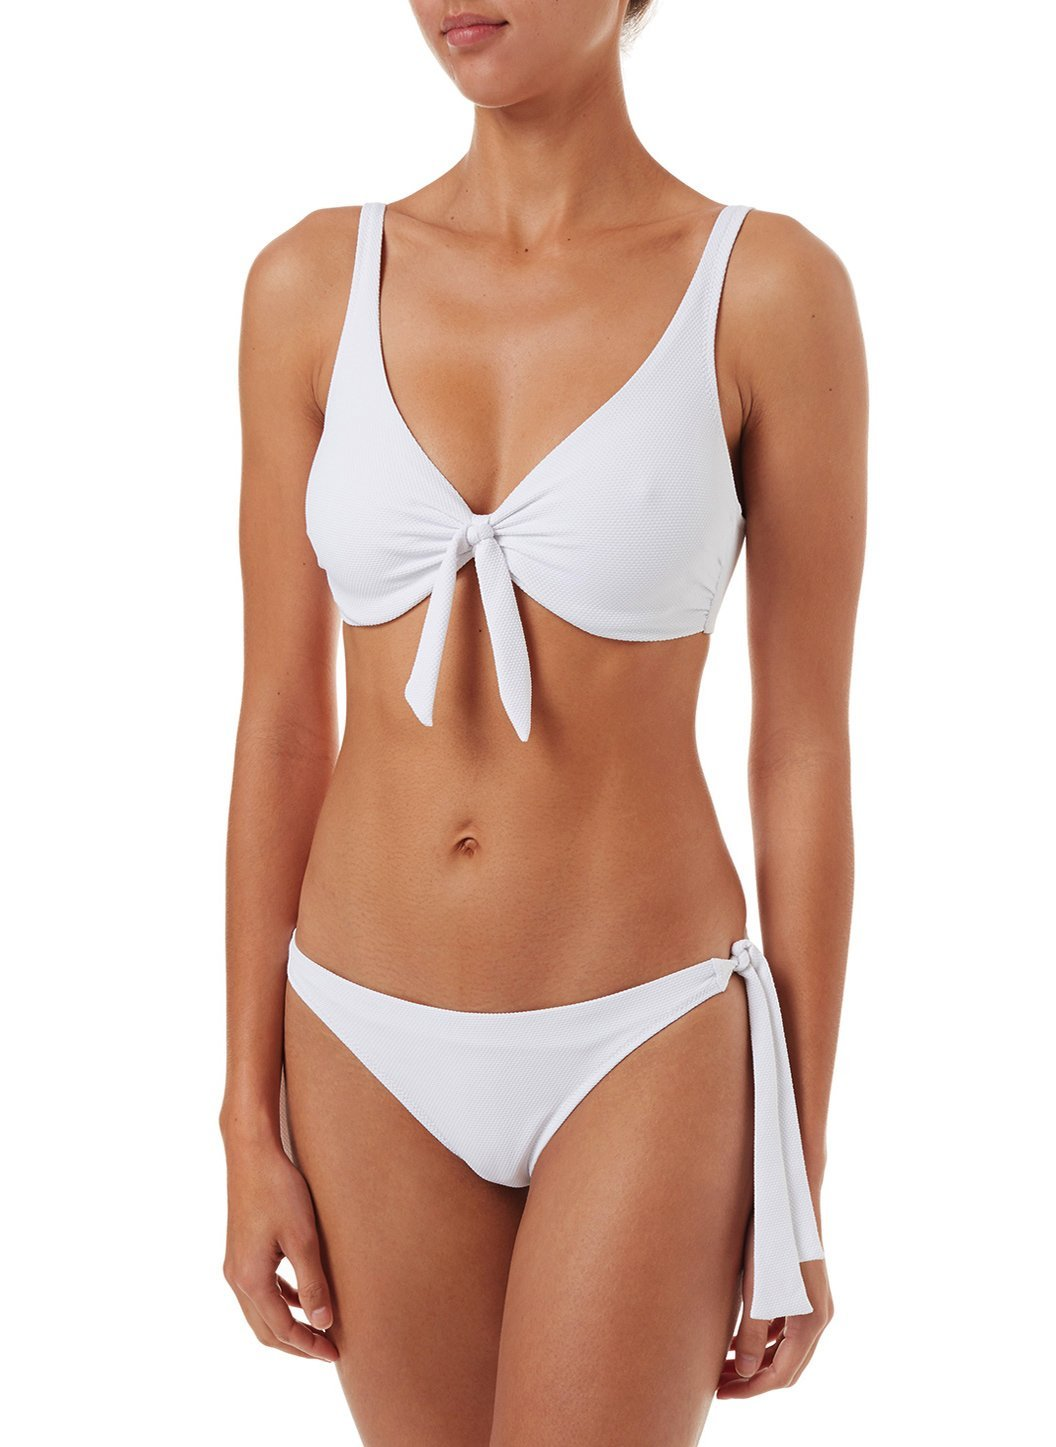 sanjuan white pique overtheshoulder knot supportive bikini 2019 F